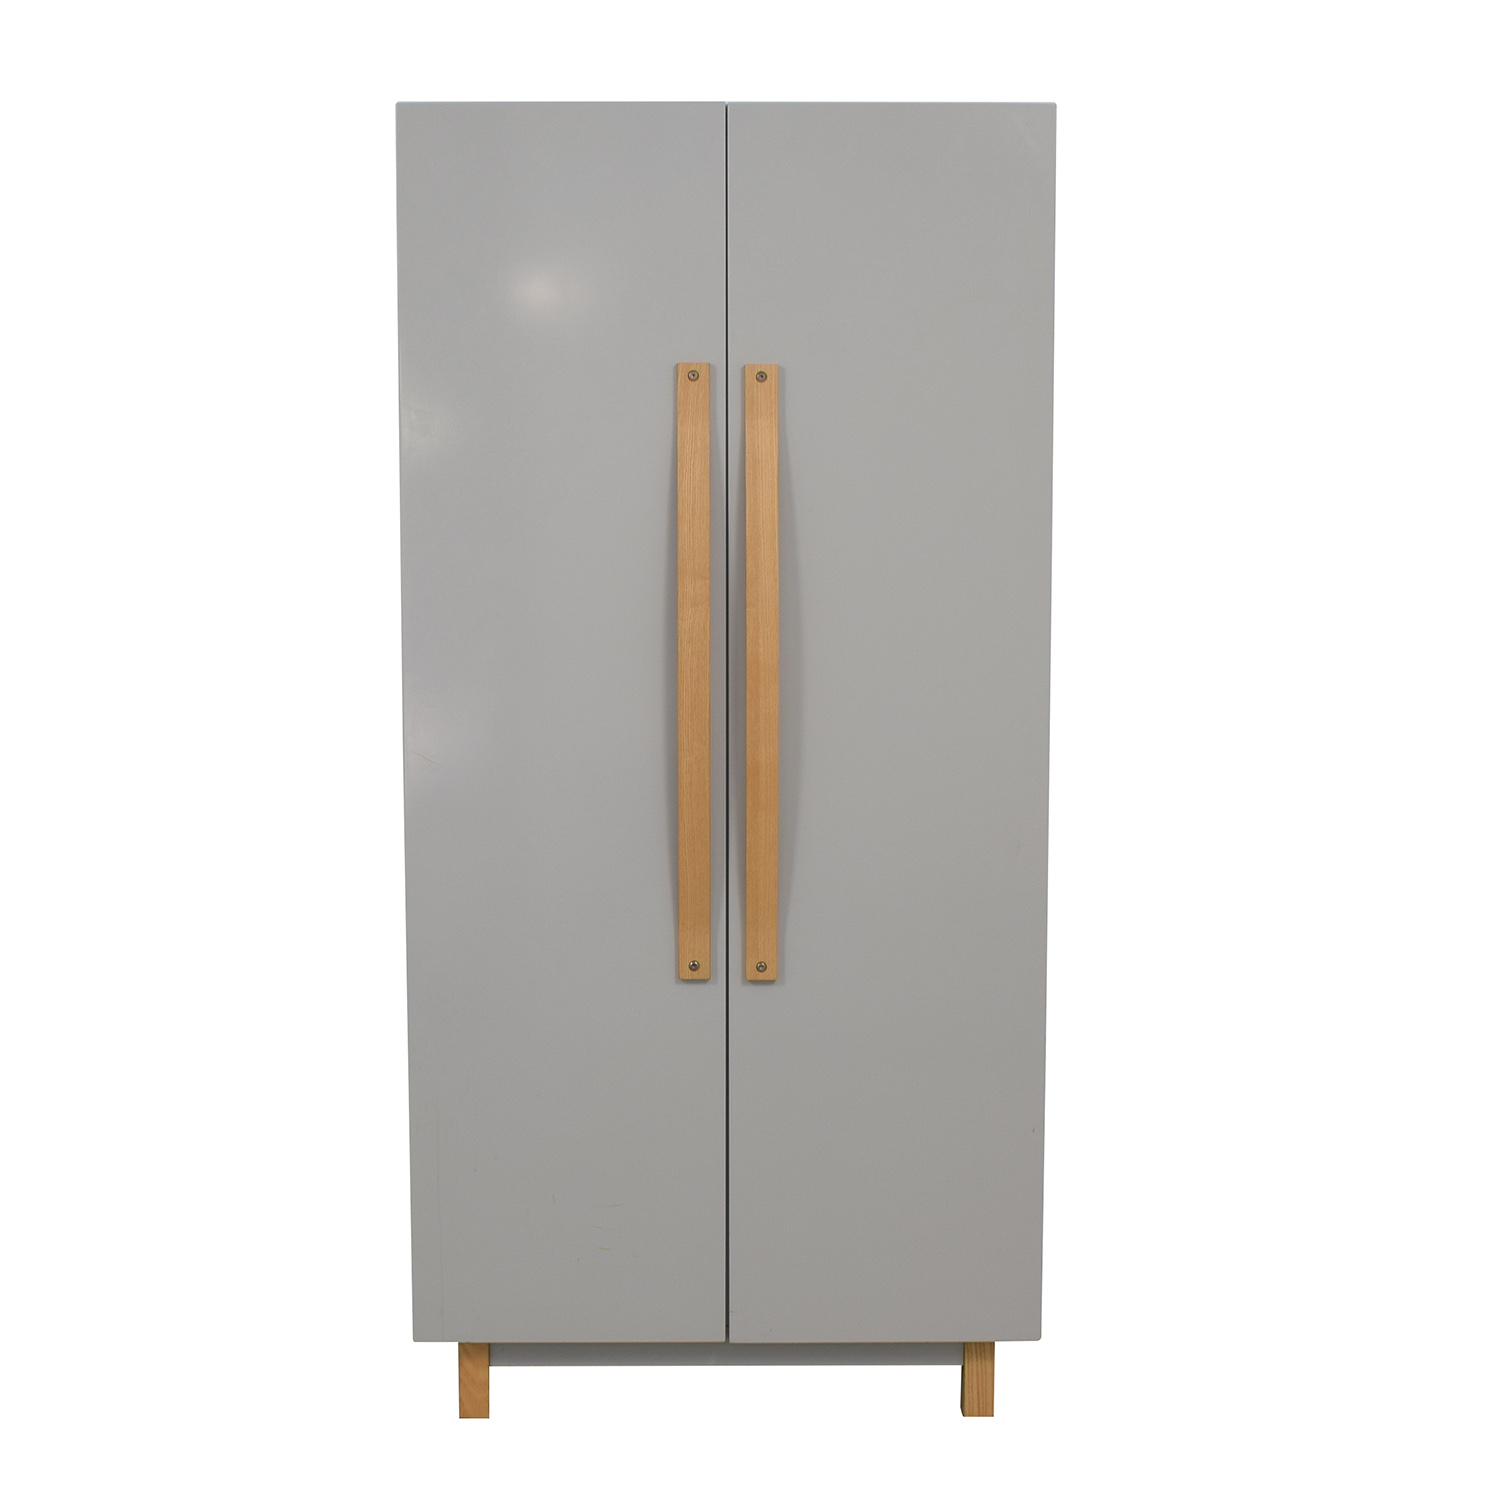 CB2 CB2 Veer Wardrobe Armoire coupon